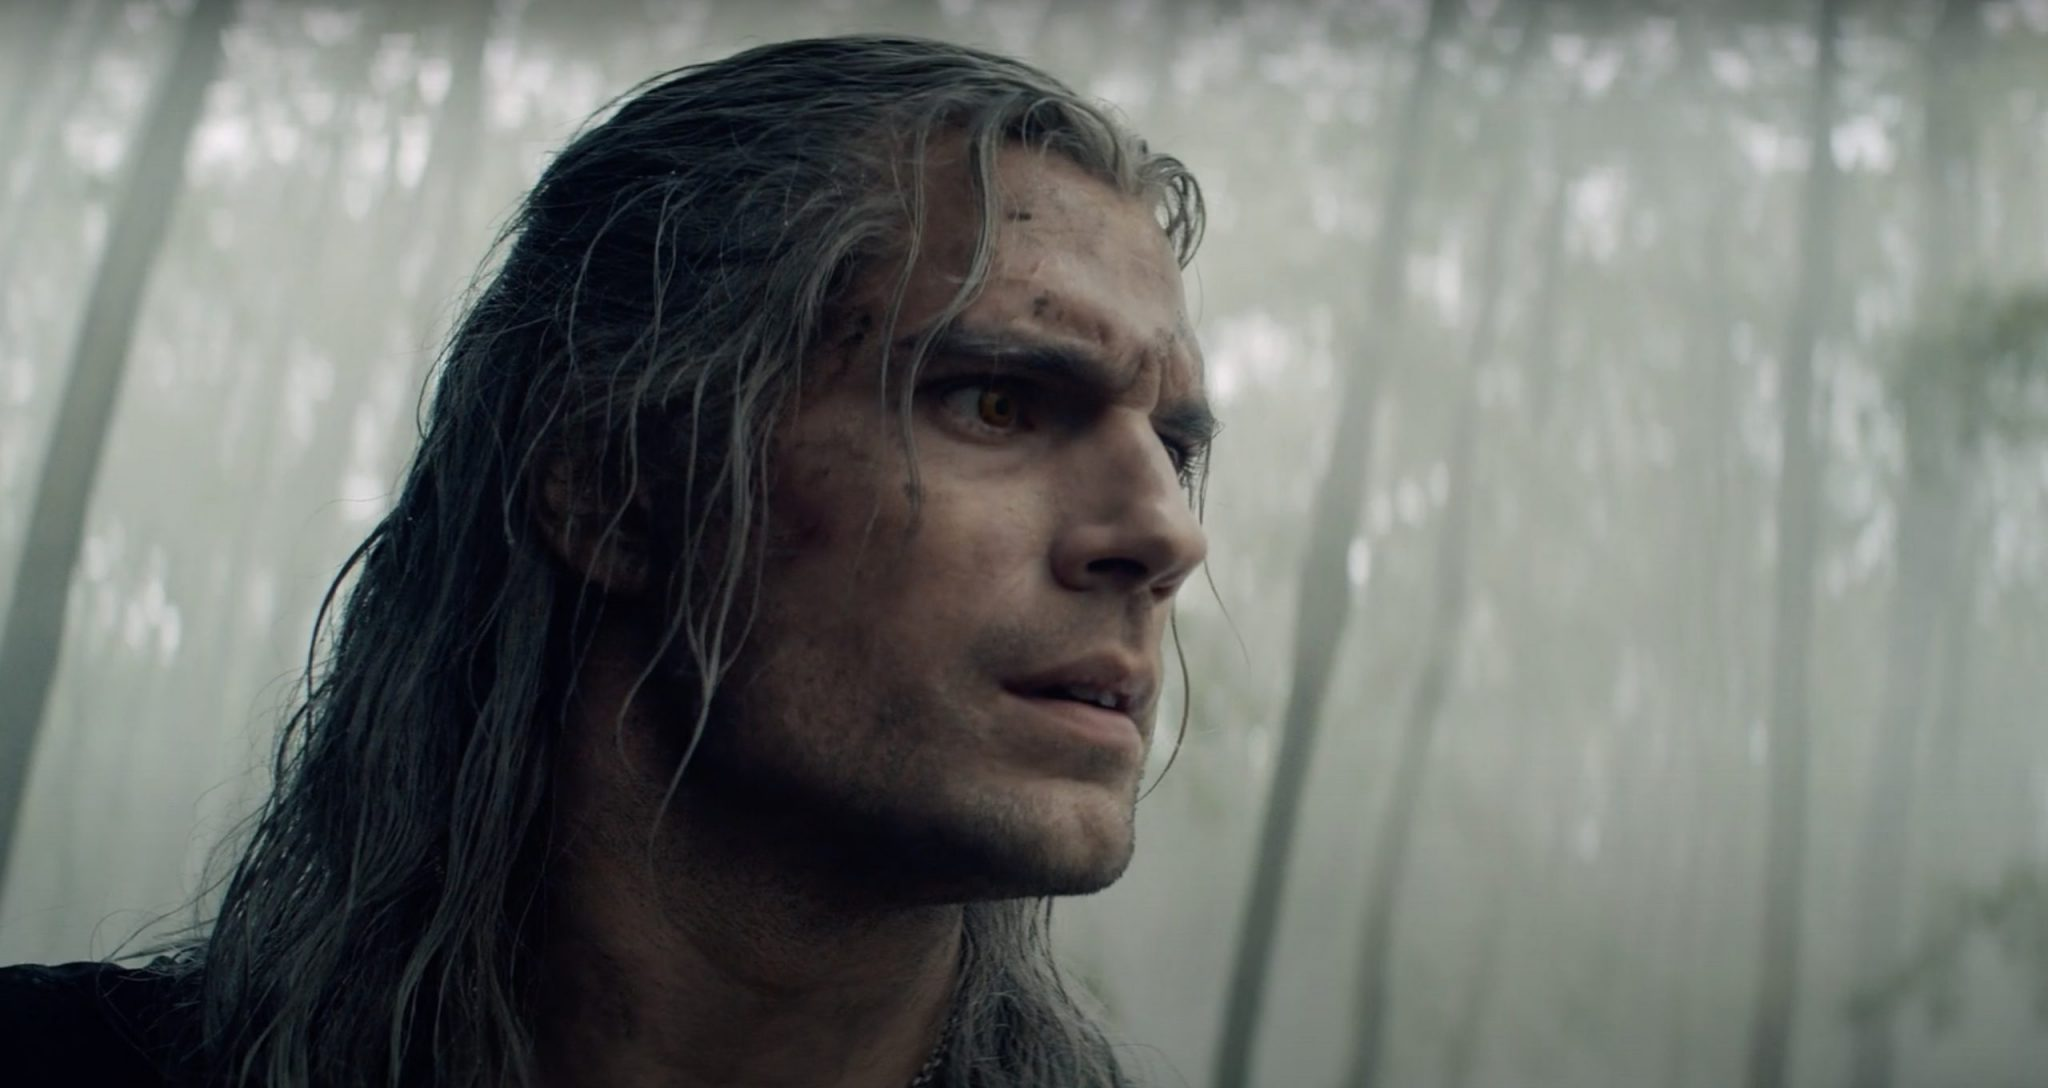 Henry Cavill, Making The Witcher, Netflix-https://www.youtube.com/watch?v=4-joBE3I3WY